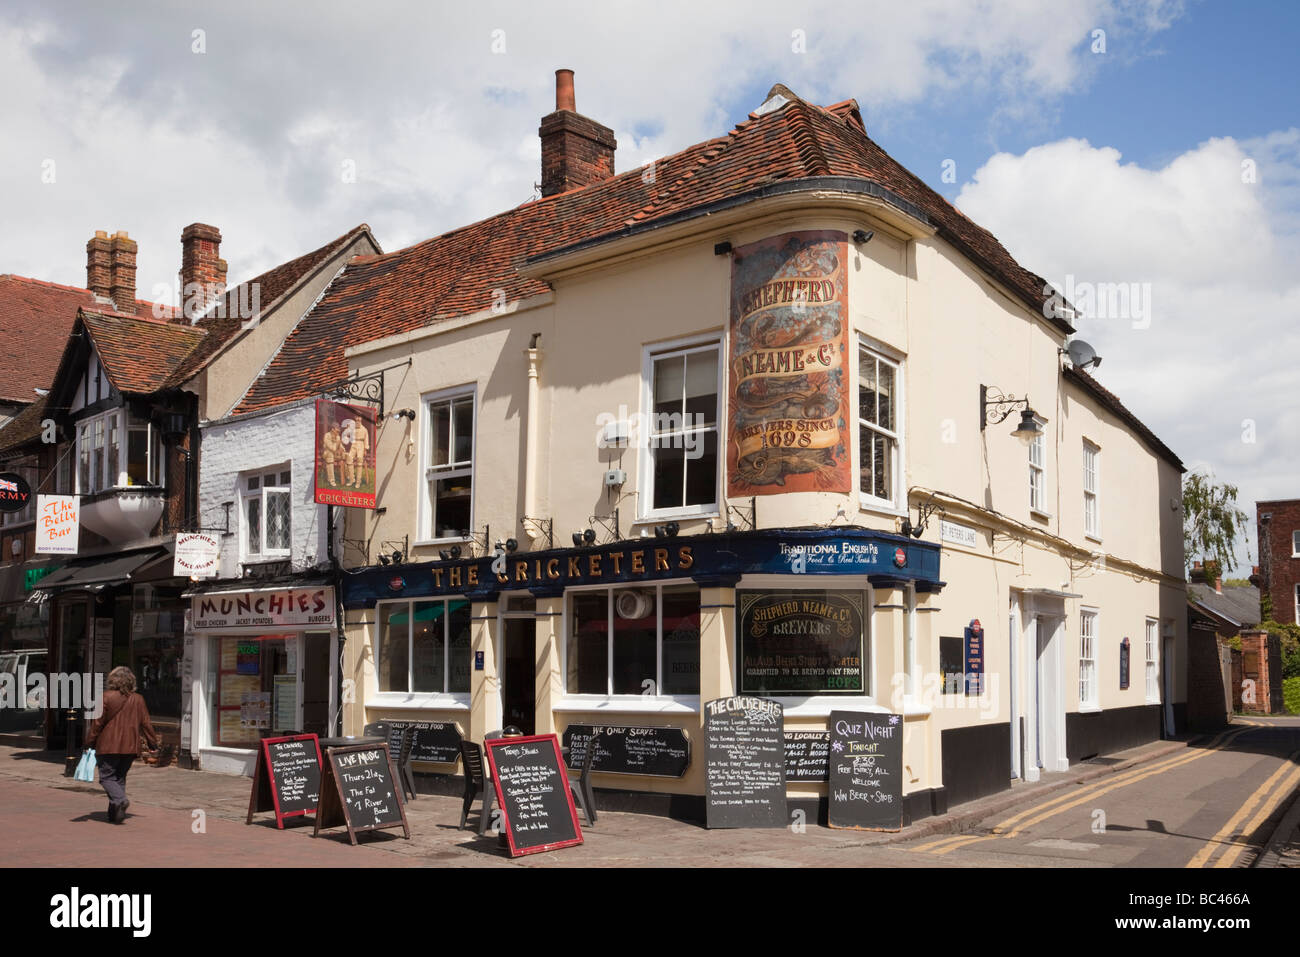 Canterbury Kent England UK Europe The Cricketers pub in the city centre - Stock Image